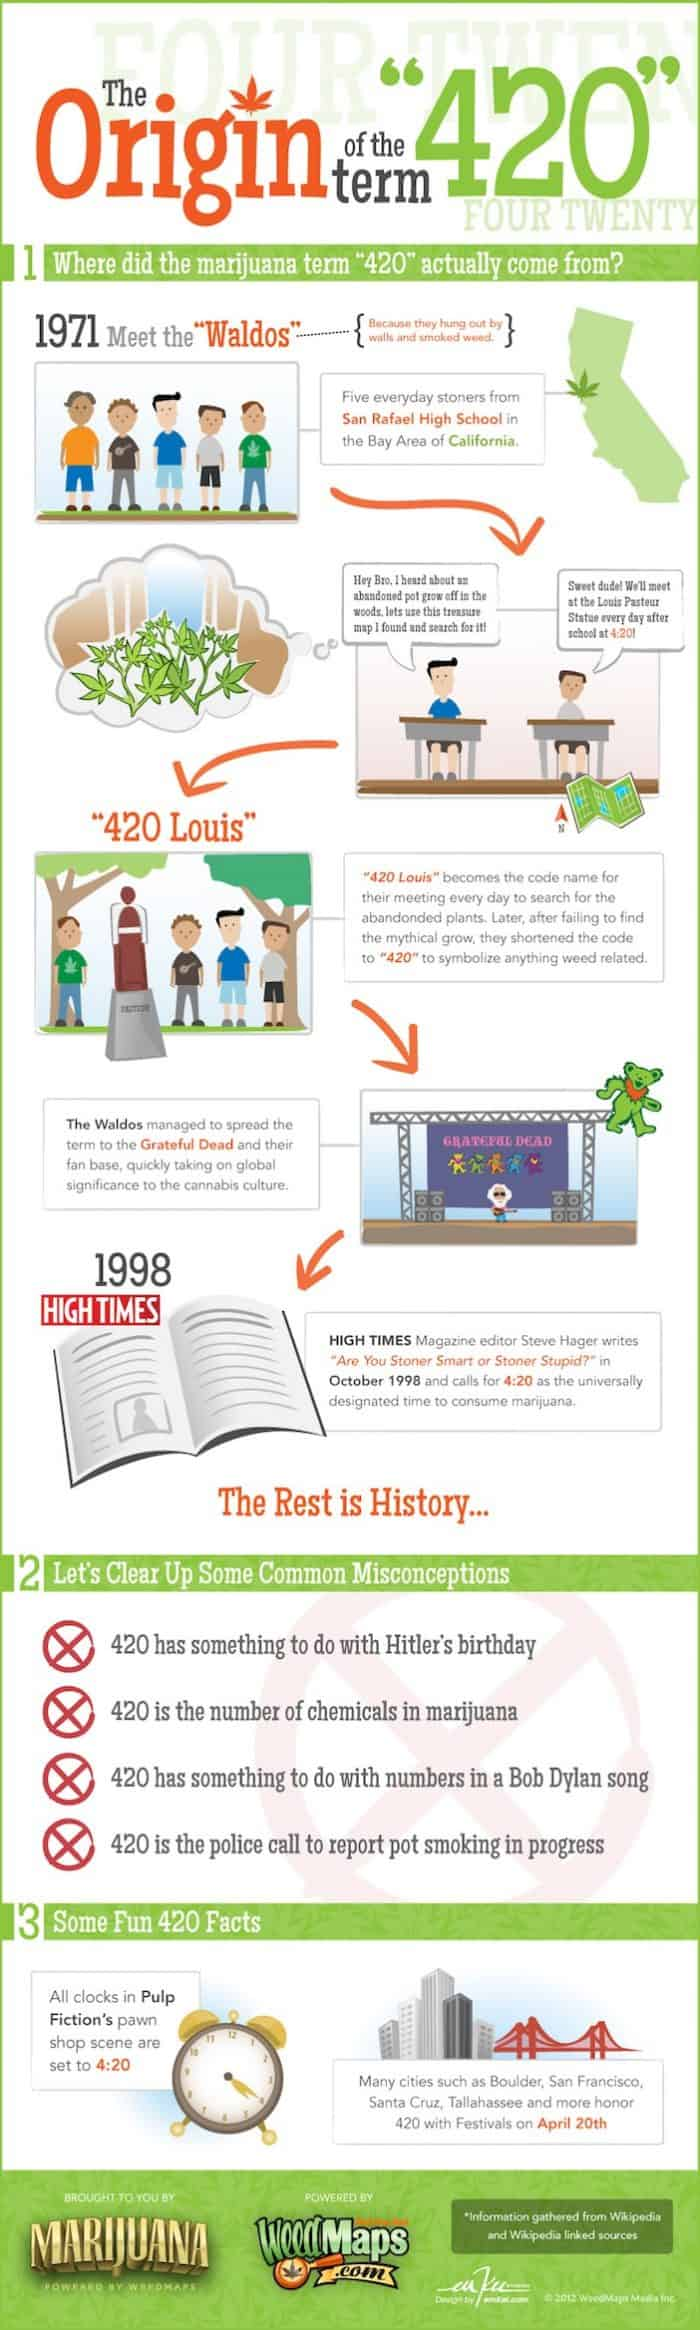 Origin of the term 420 infographic